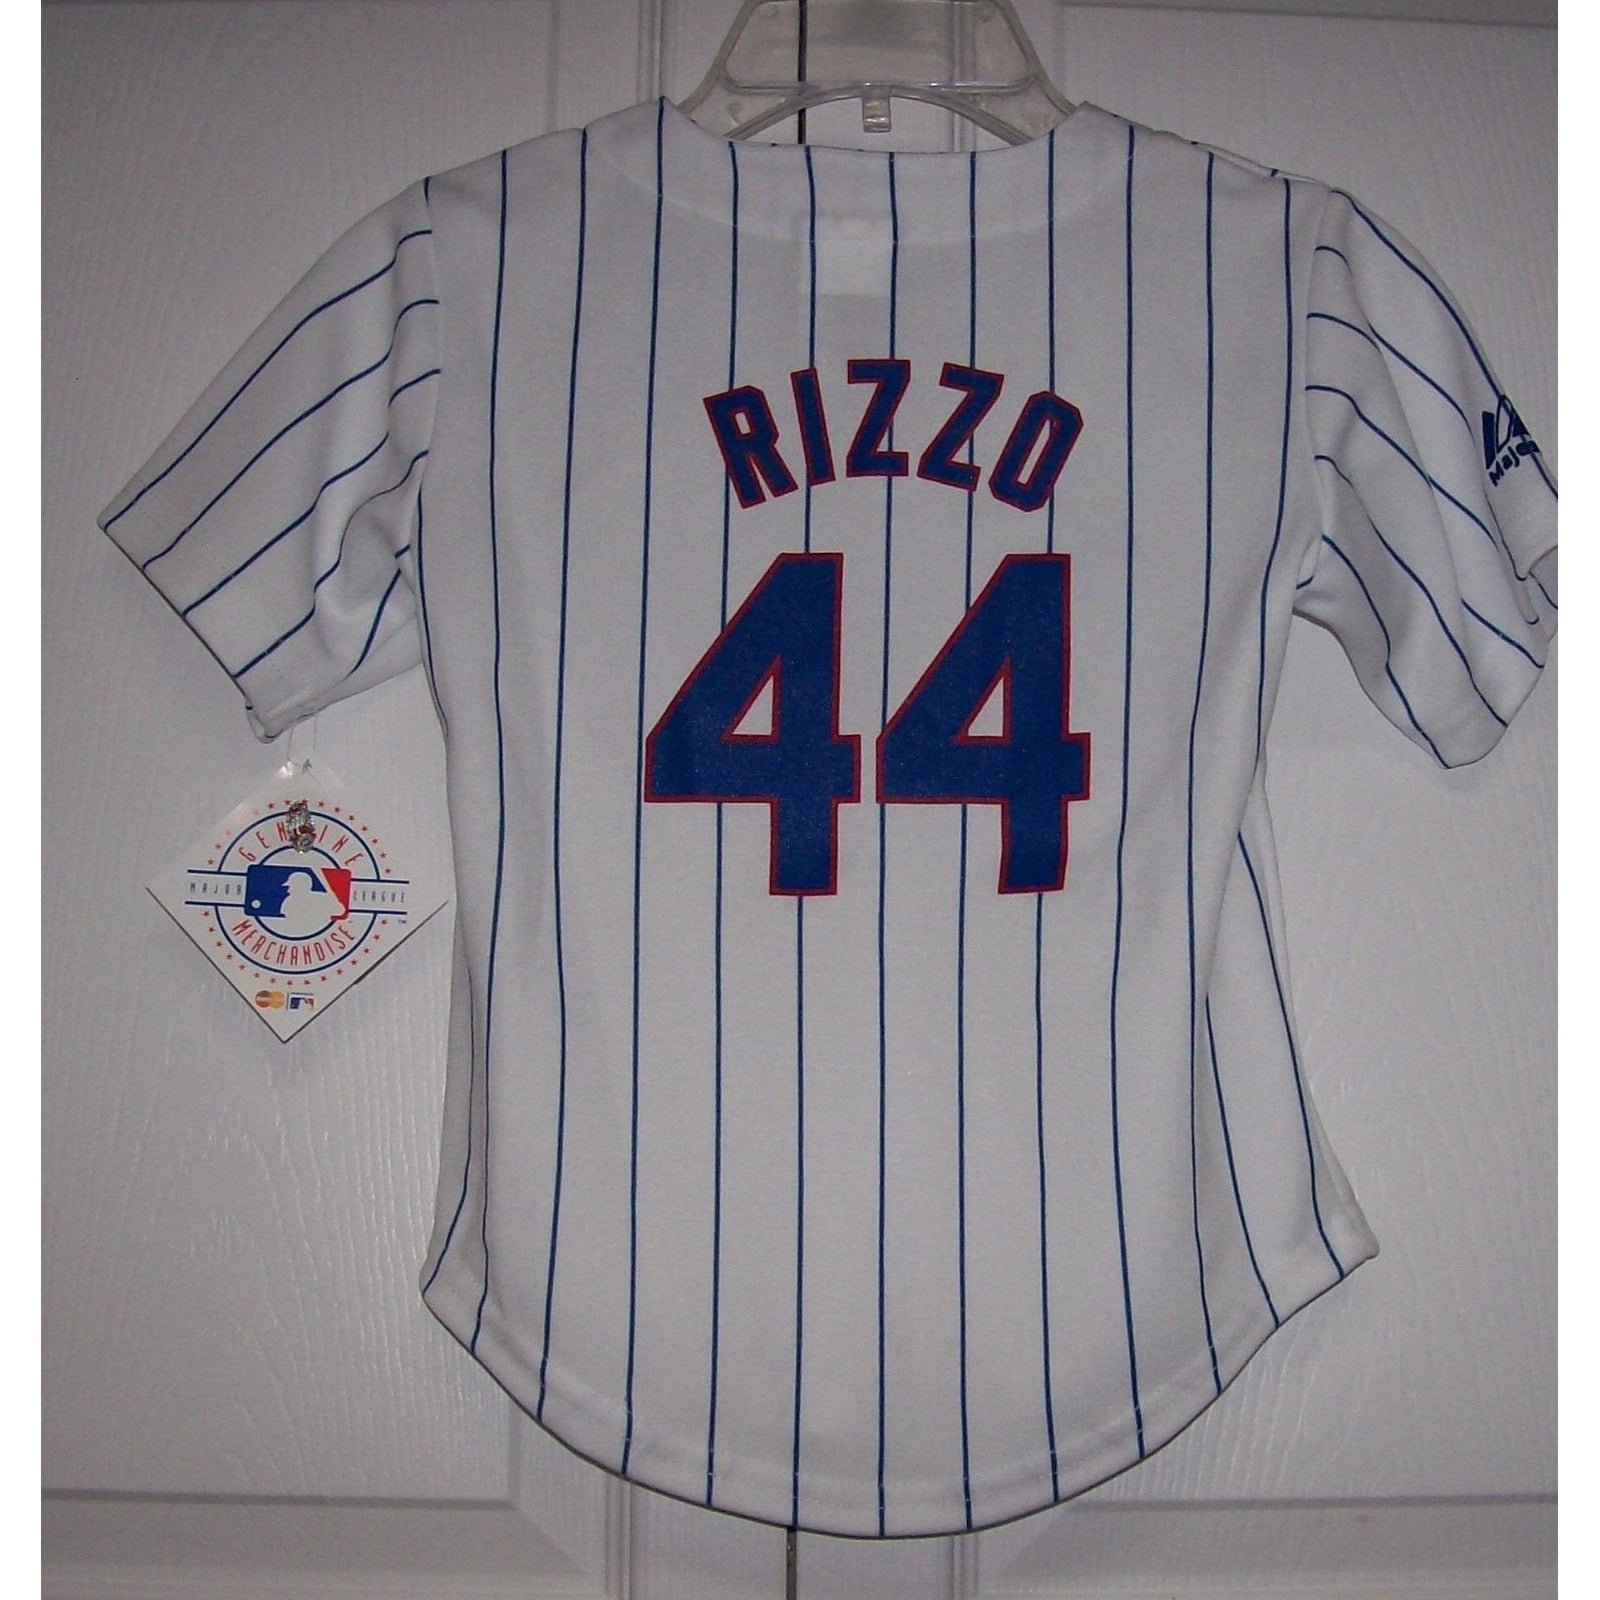 fe261eac2 RIZZO Chicago Cubs BOYS Majestic MLB Baseball jersey HOME White ...